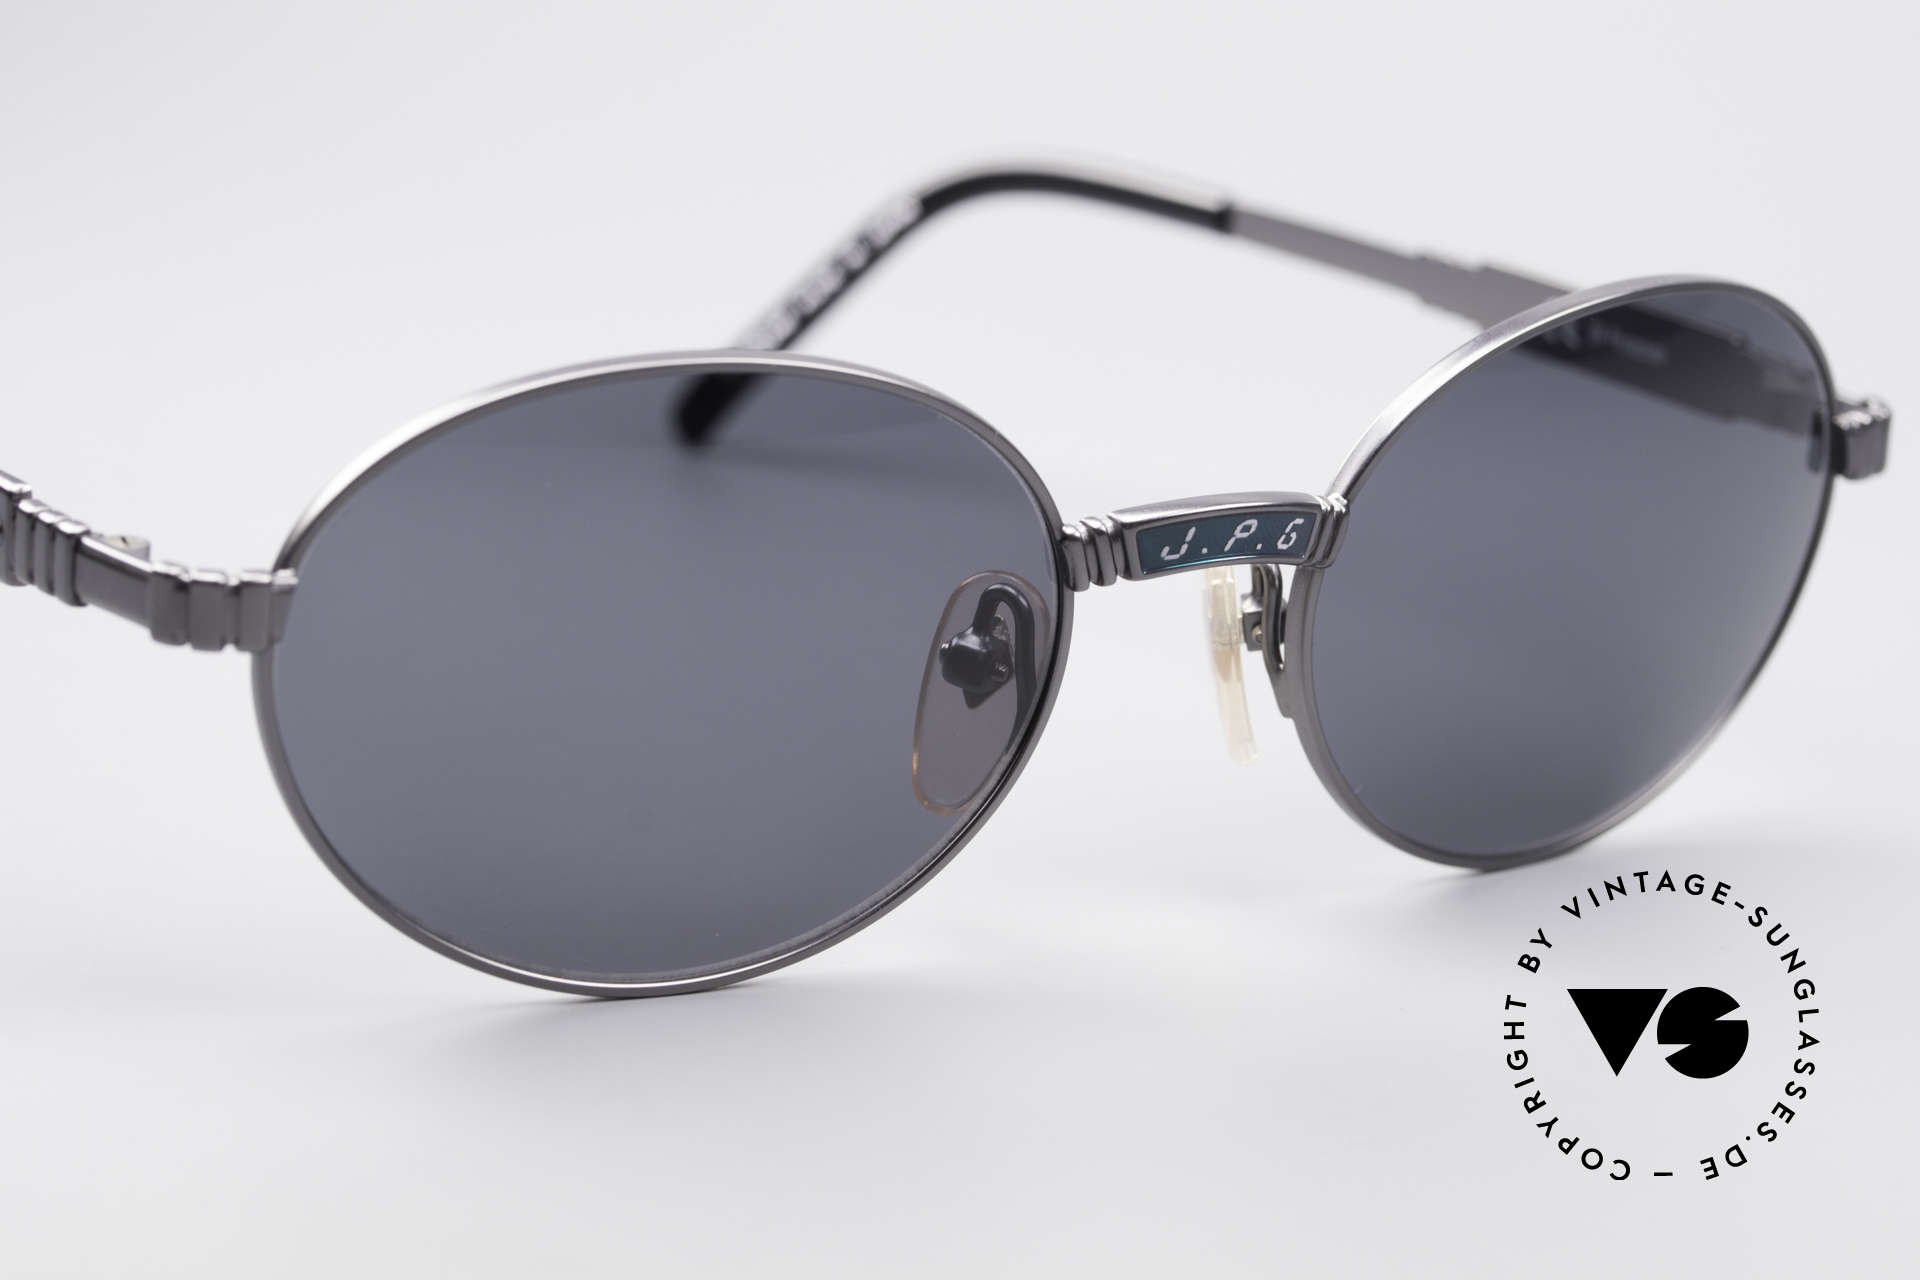 Jean Paul Gaultier 58-5104 Oval Designer Sunglasses, NO RETRO specs, but an authentic original from 1997, Made for Men and Women